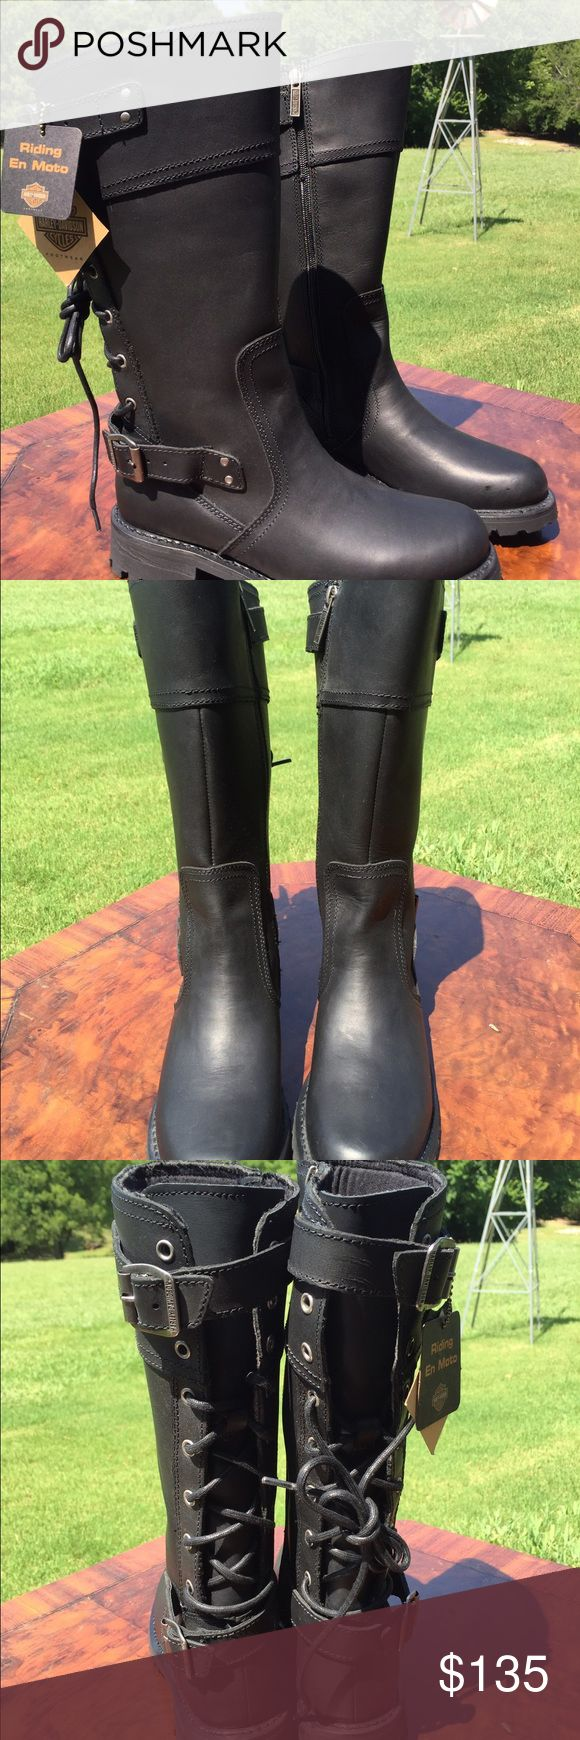 NWT! Lady Harley Davidson Motorcycle Boots Very sweet Harley riding boots for women. Size 9.5. Zipper, lace up back and buckles. Never worn. Excellent condition. Harley-Davidson Shoes Combat & Moto Boots